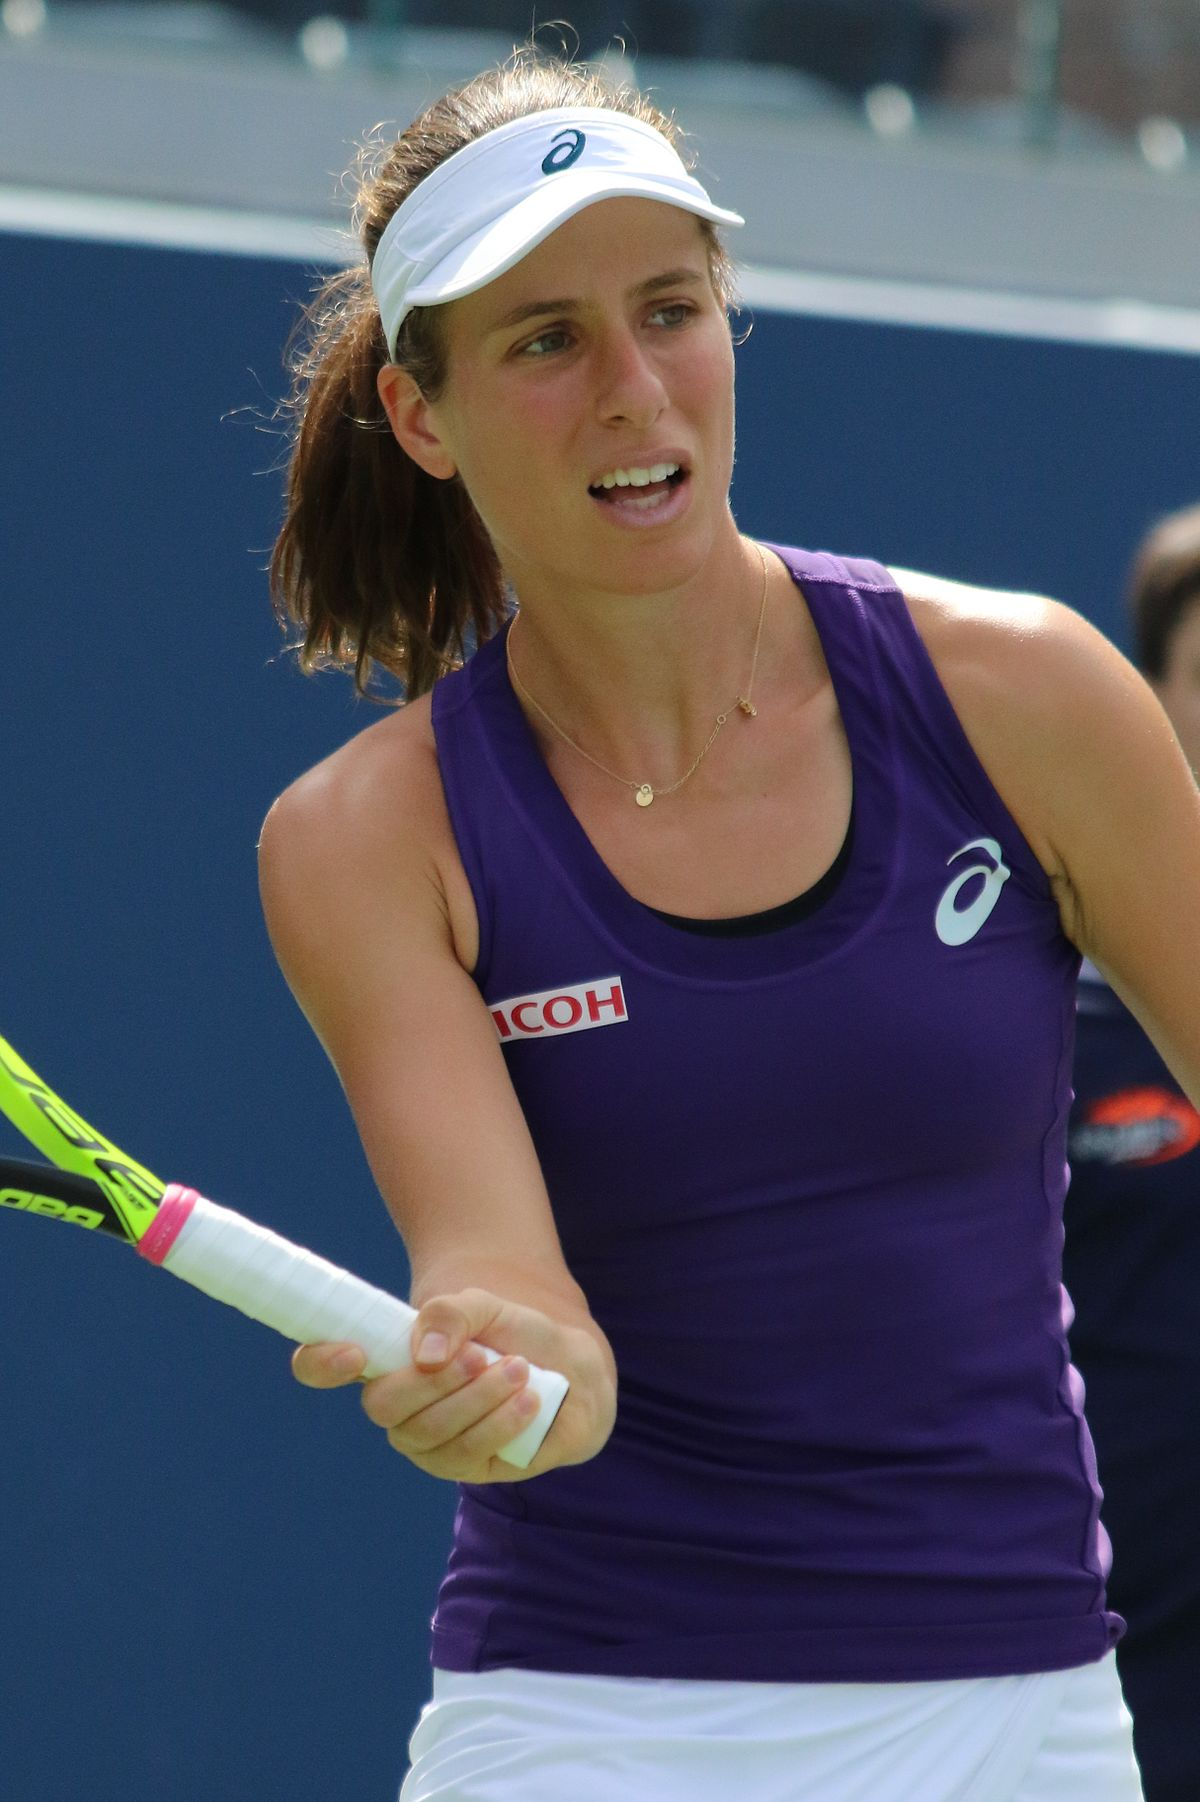 Watch Main article: List of female tennis players video